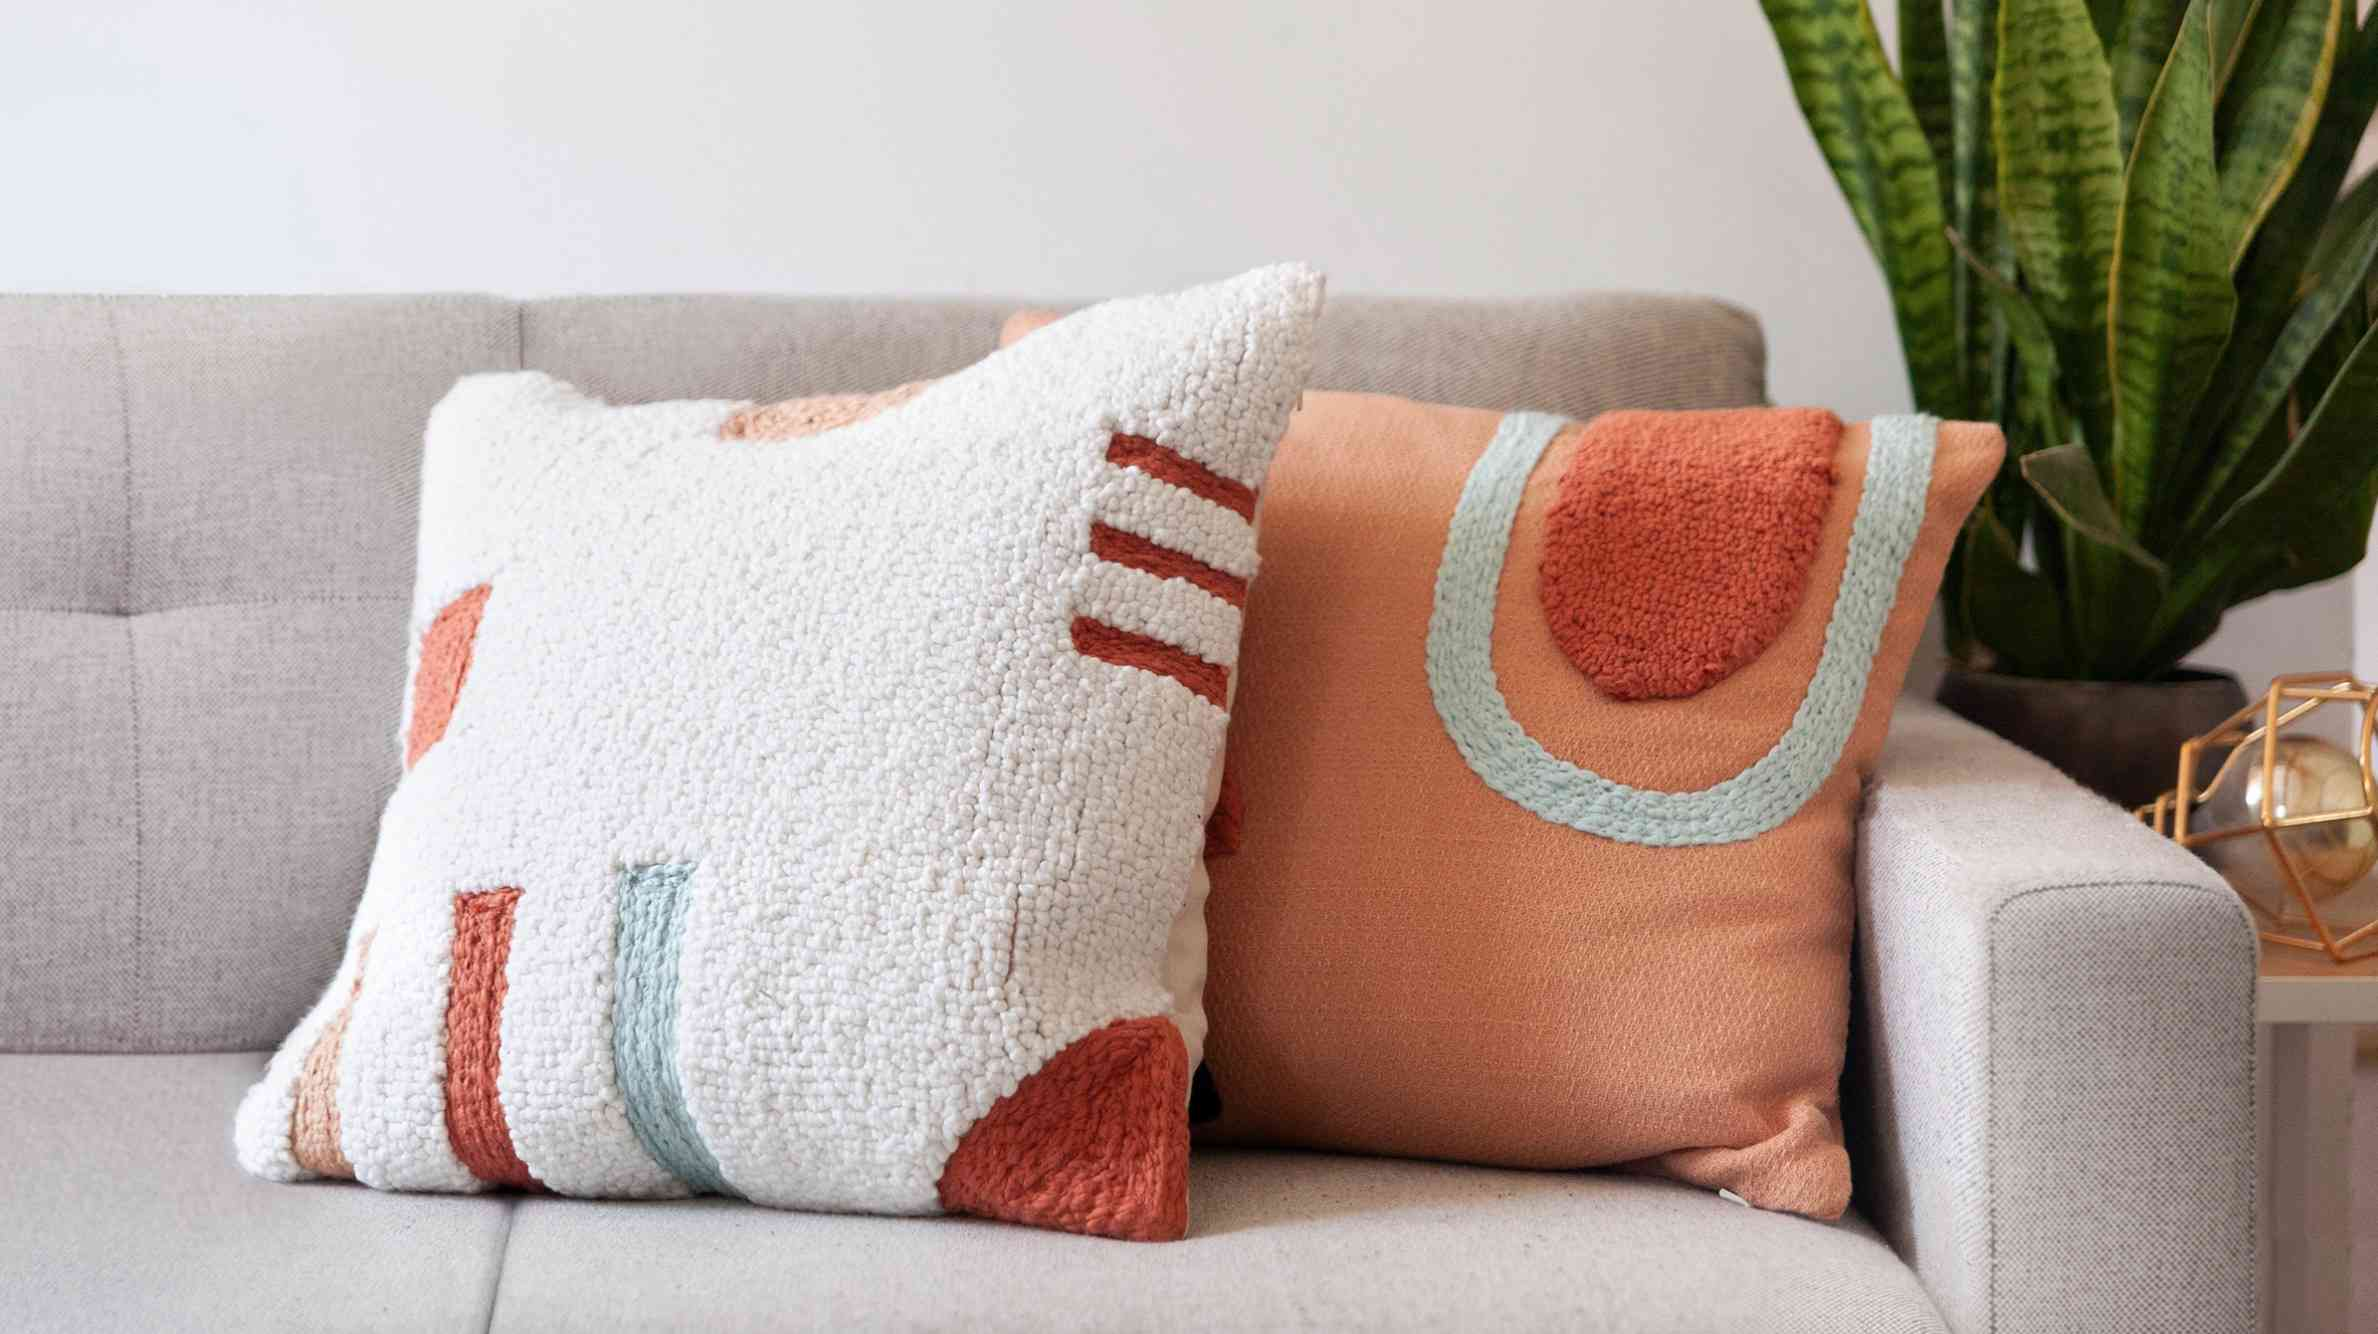 Embroidered Adobe Clay Pillow Cover